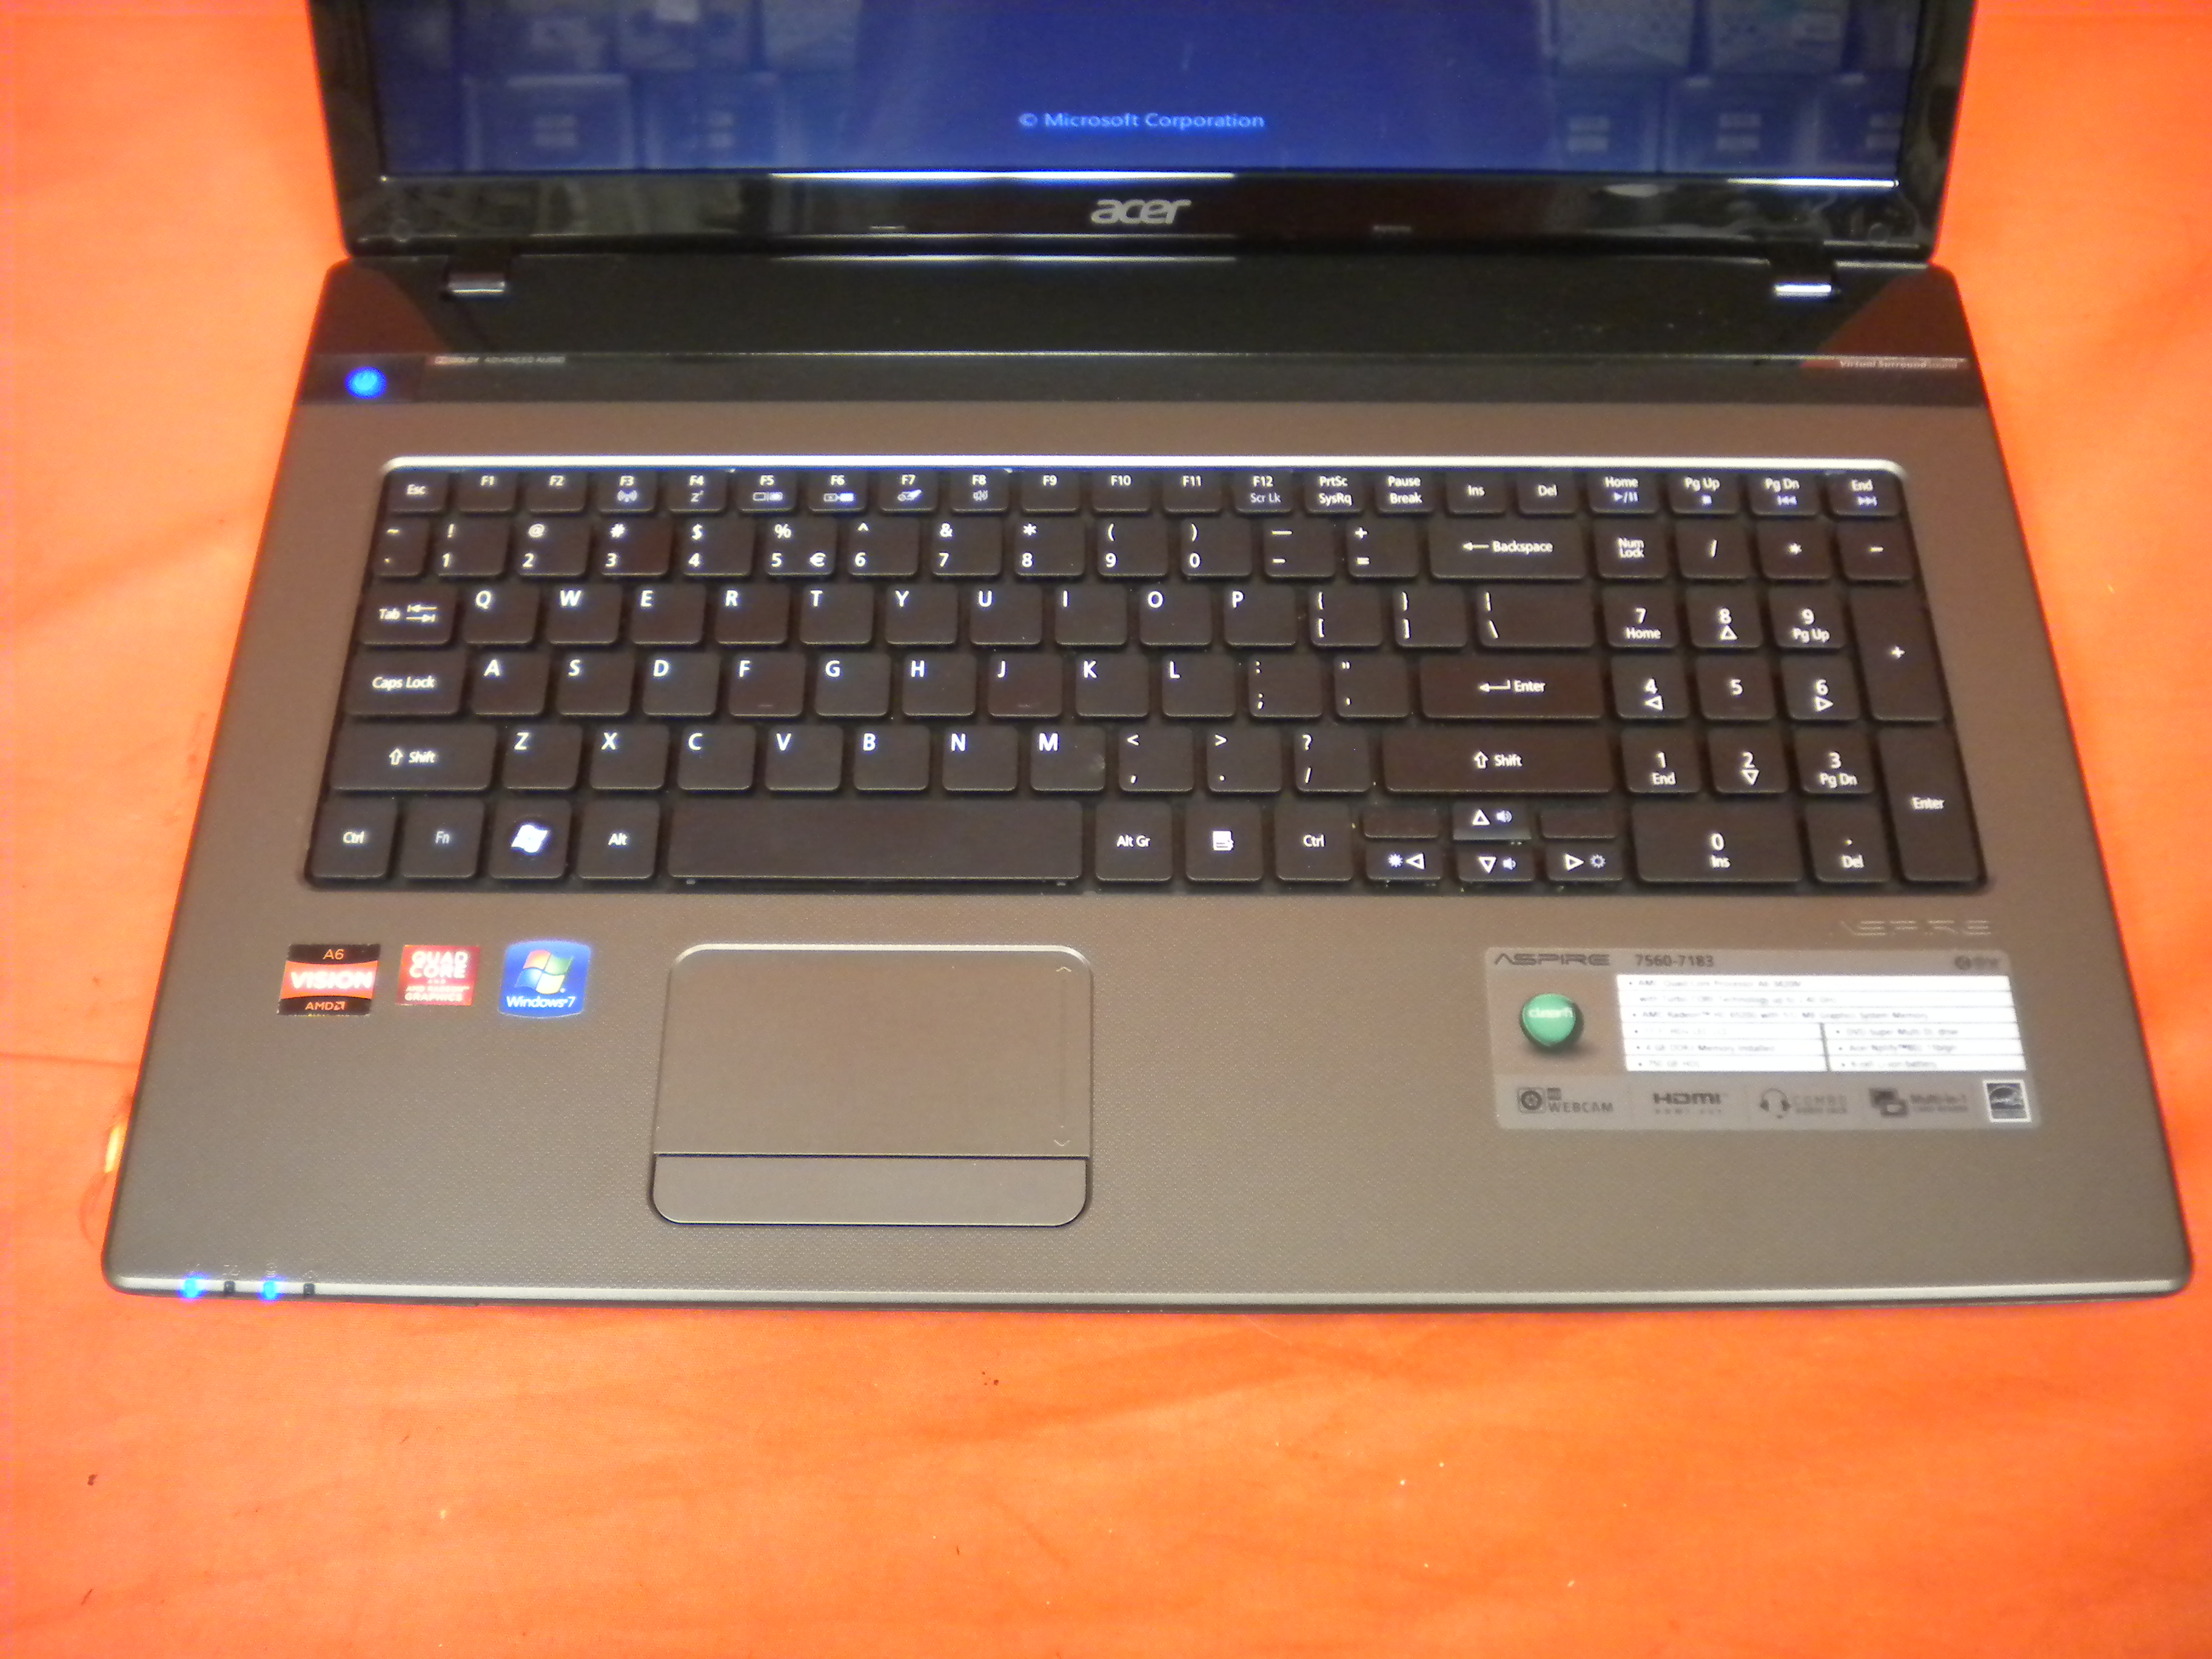 Image 1 of Acer Aspire 7560-7183 Laptop 17.3